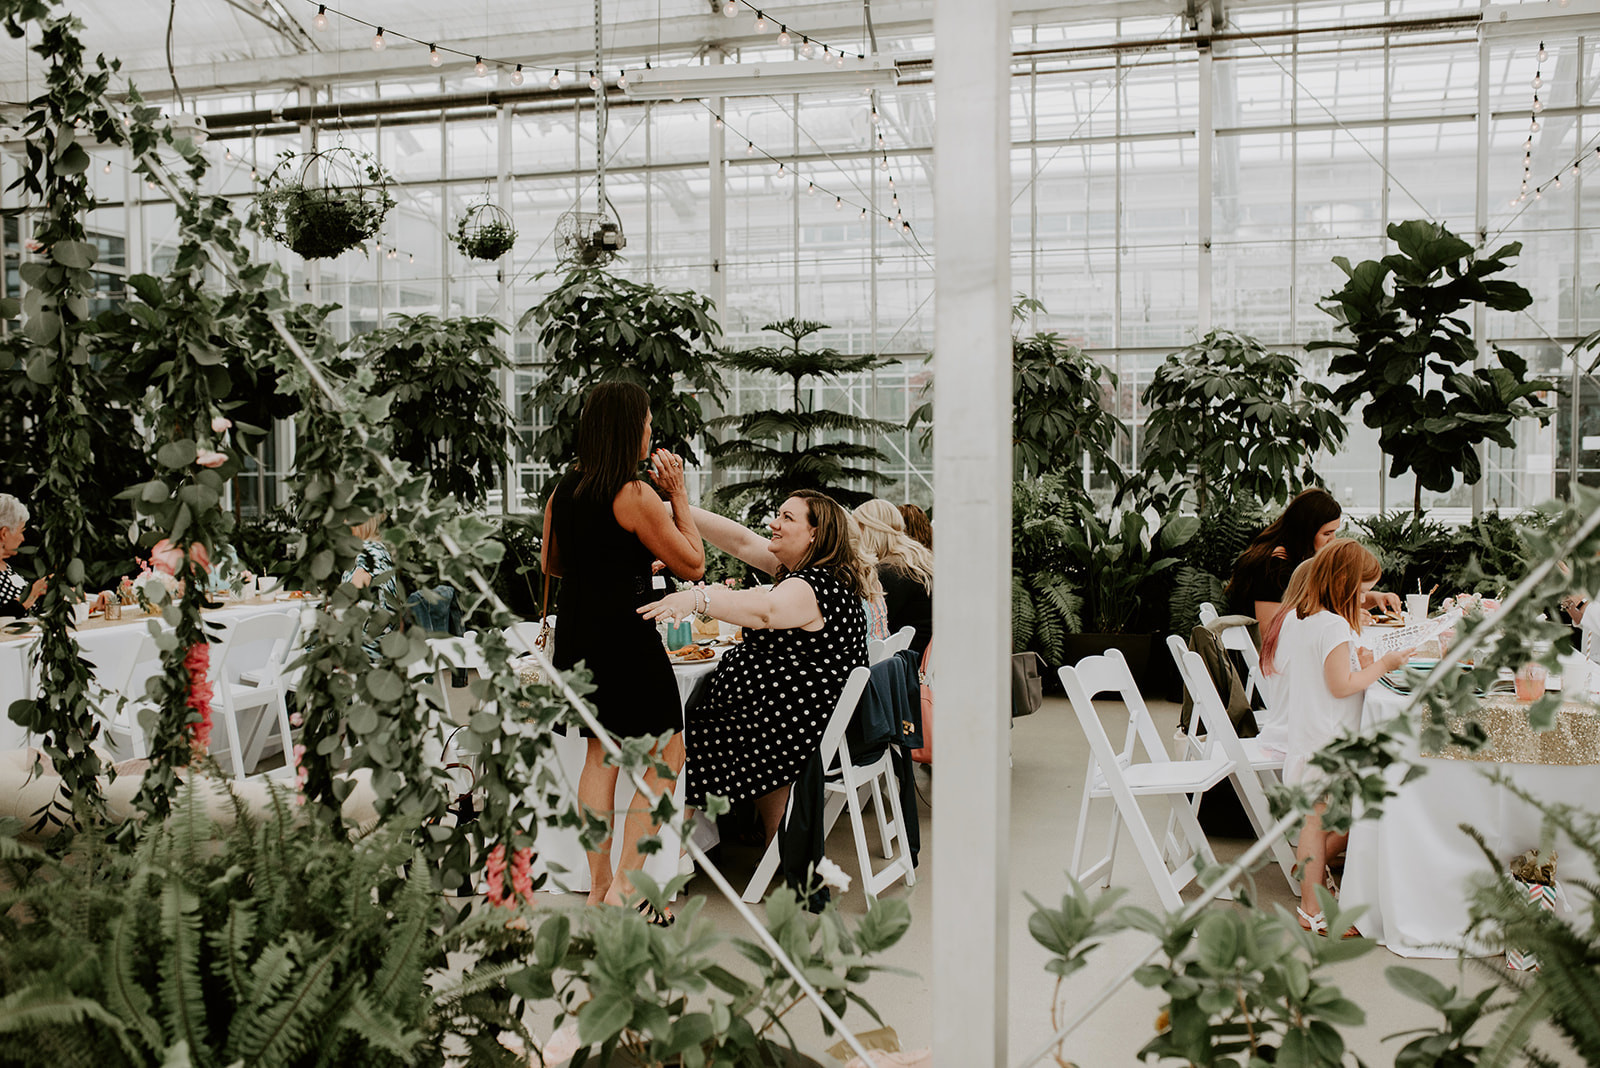 JS Weddings and Events Grand Rapids Wedding Planner and Floral Designer - Whimsical Garden Romantic Kate Spade Bridal Shower Greenhouse at the Downtown Market